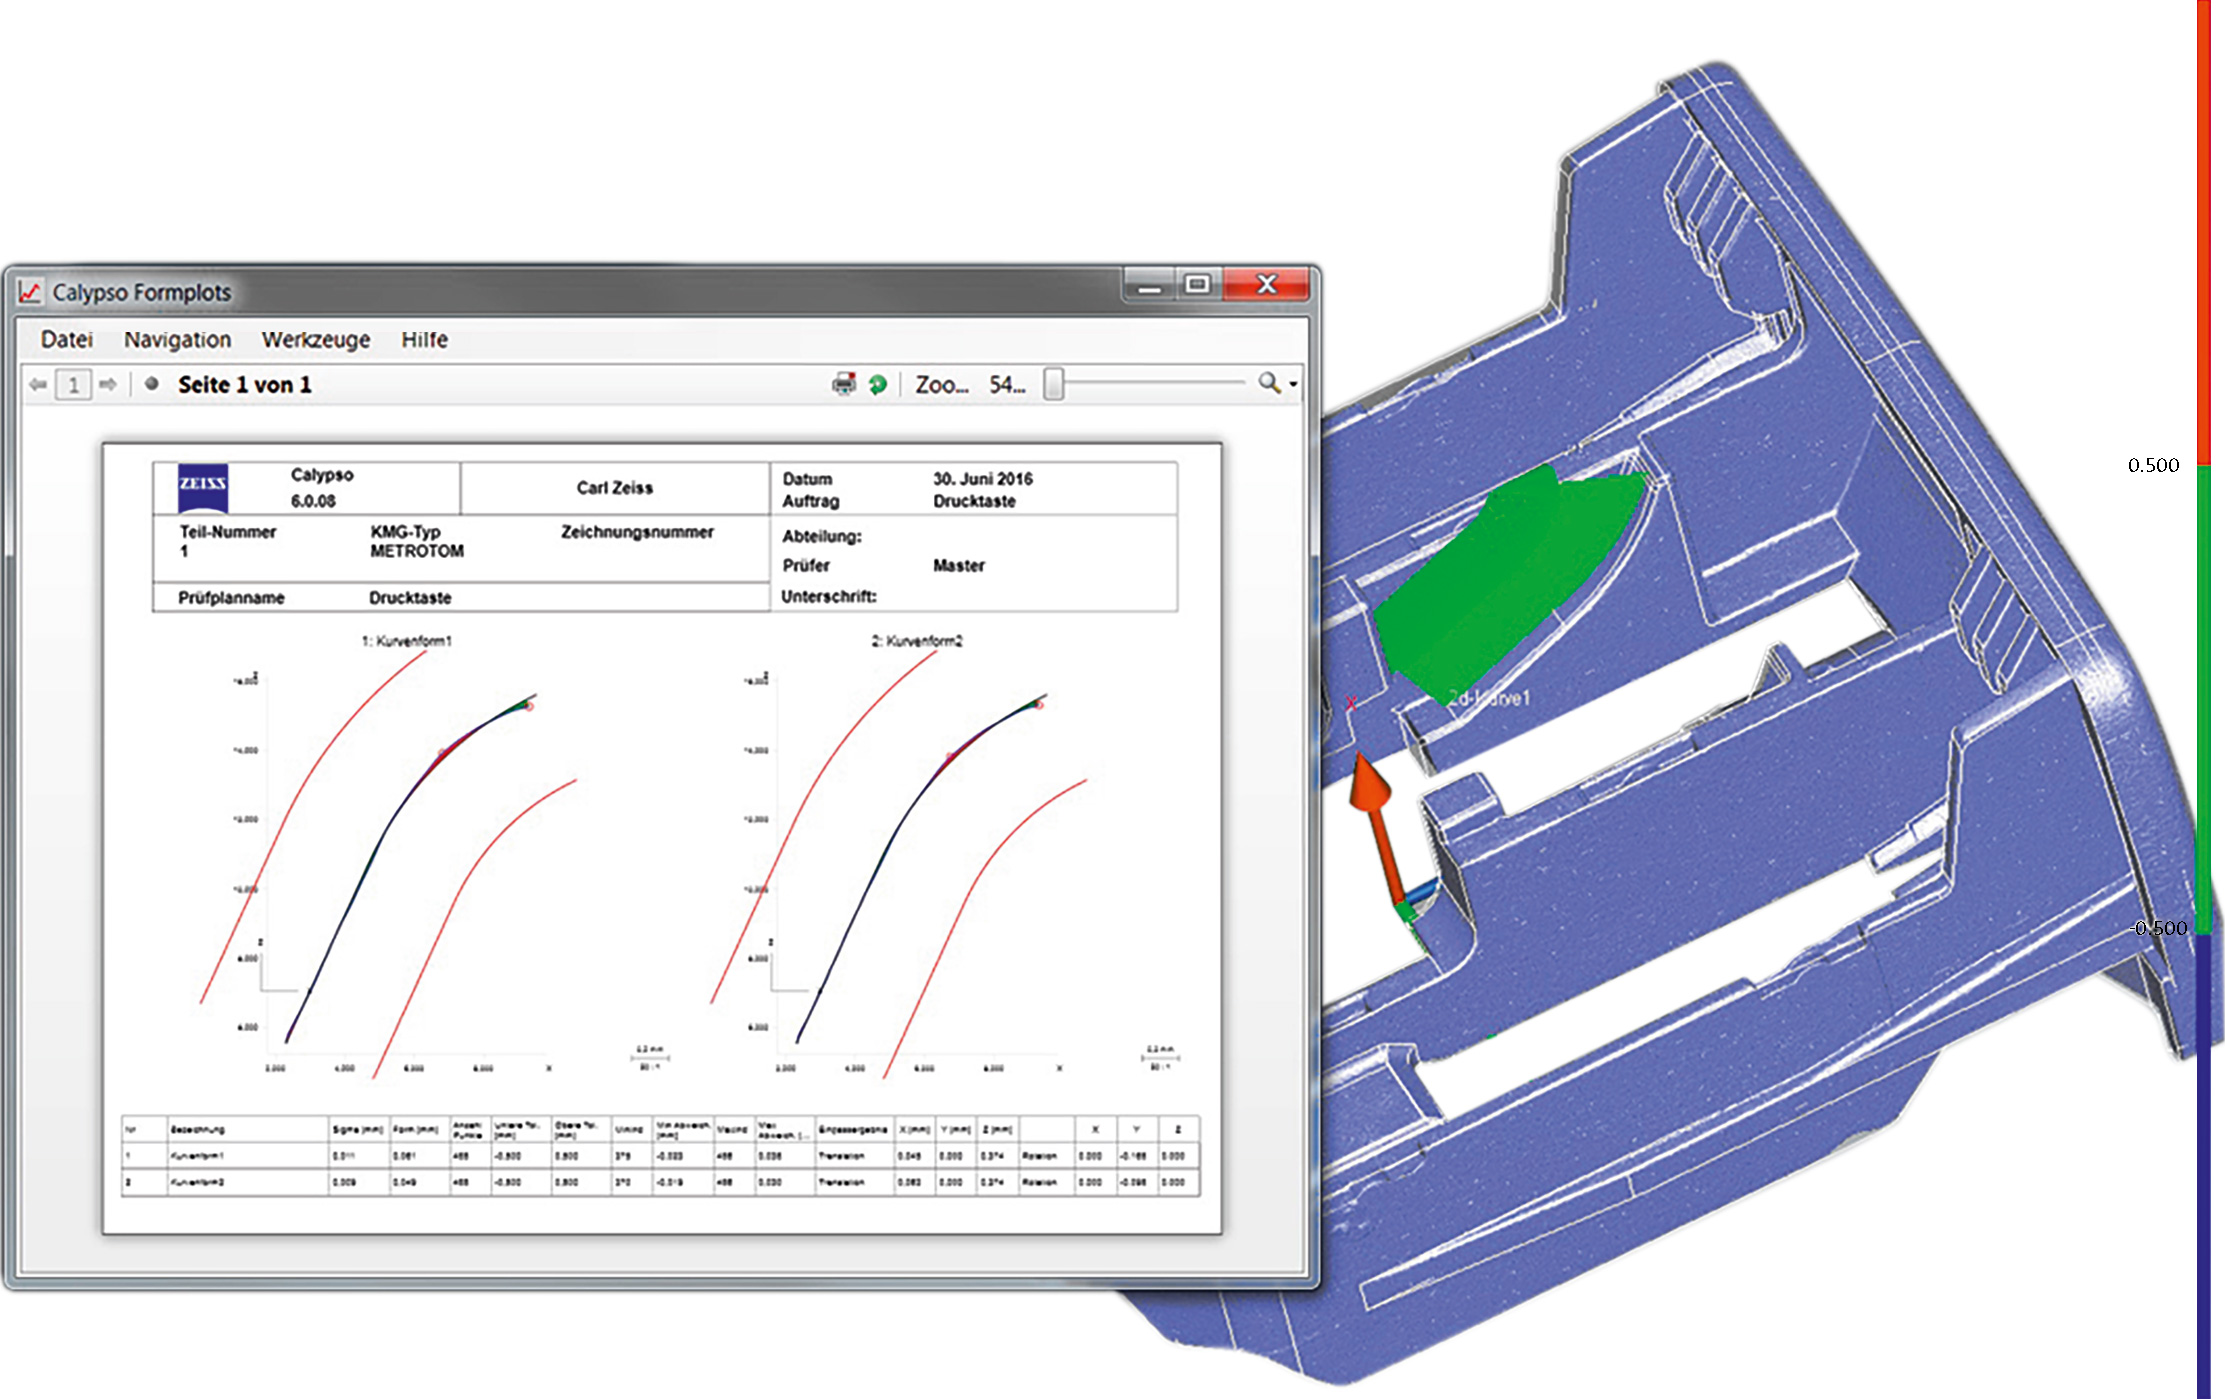 Detail analysis of a curve form on the component using ZEISS CALYPSO CT.